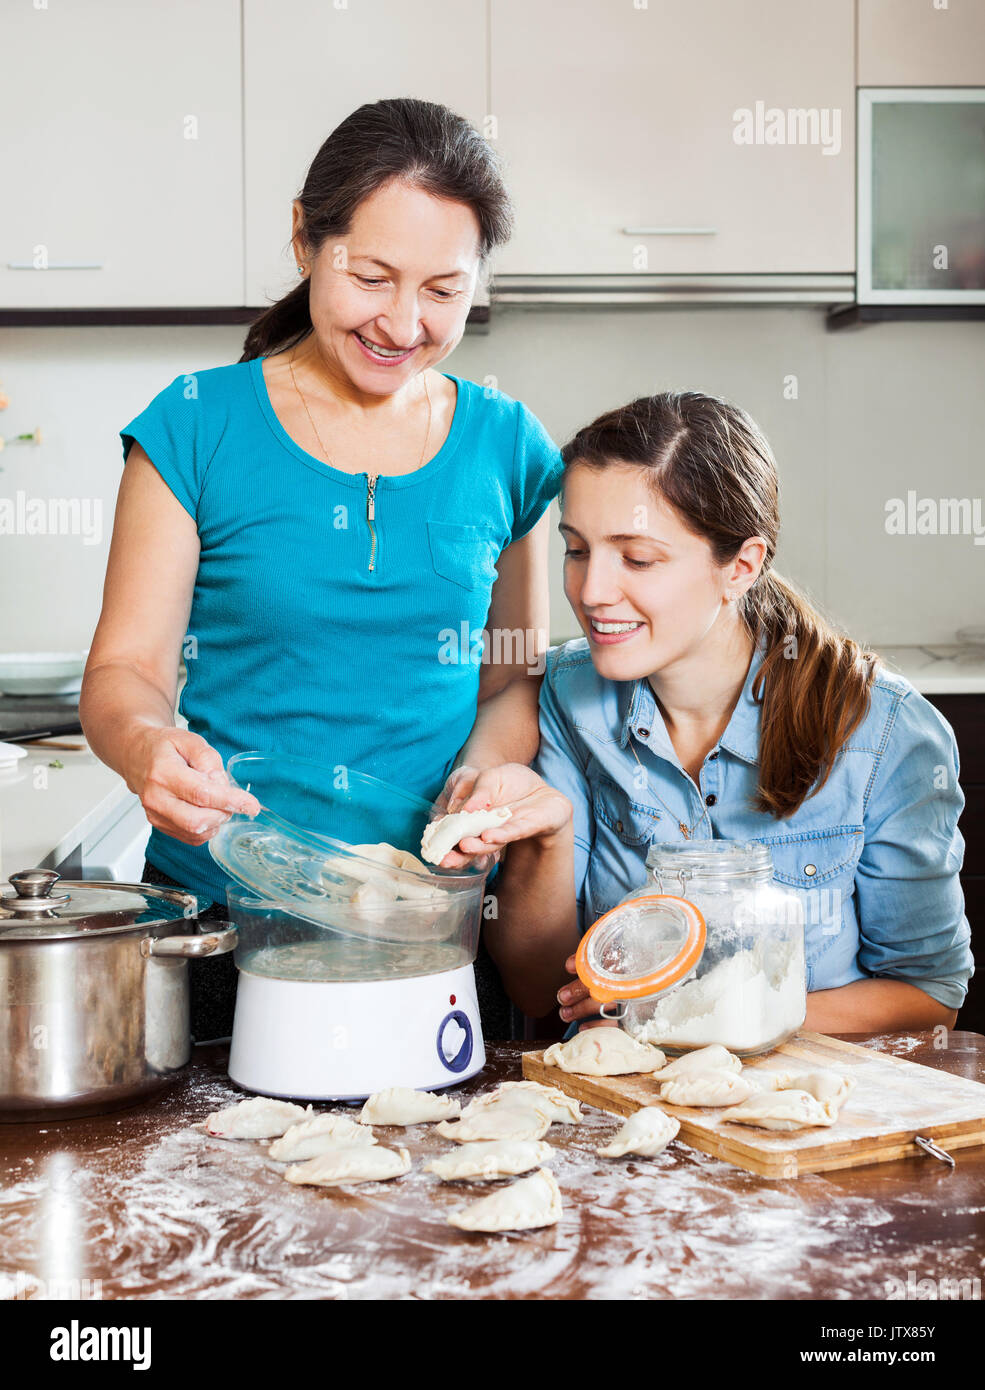 Mature Woman Cooking Food Steamer Stock Photos & Mature Woman ...